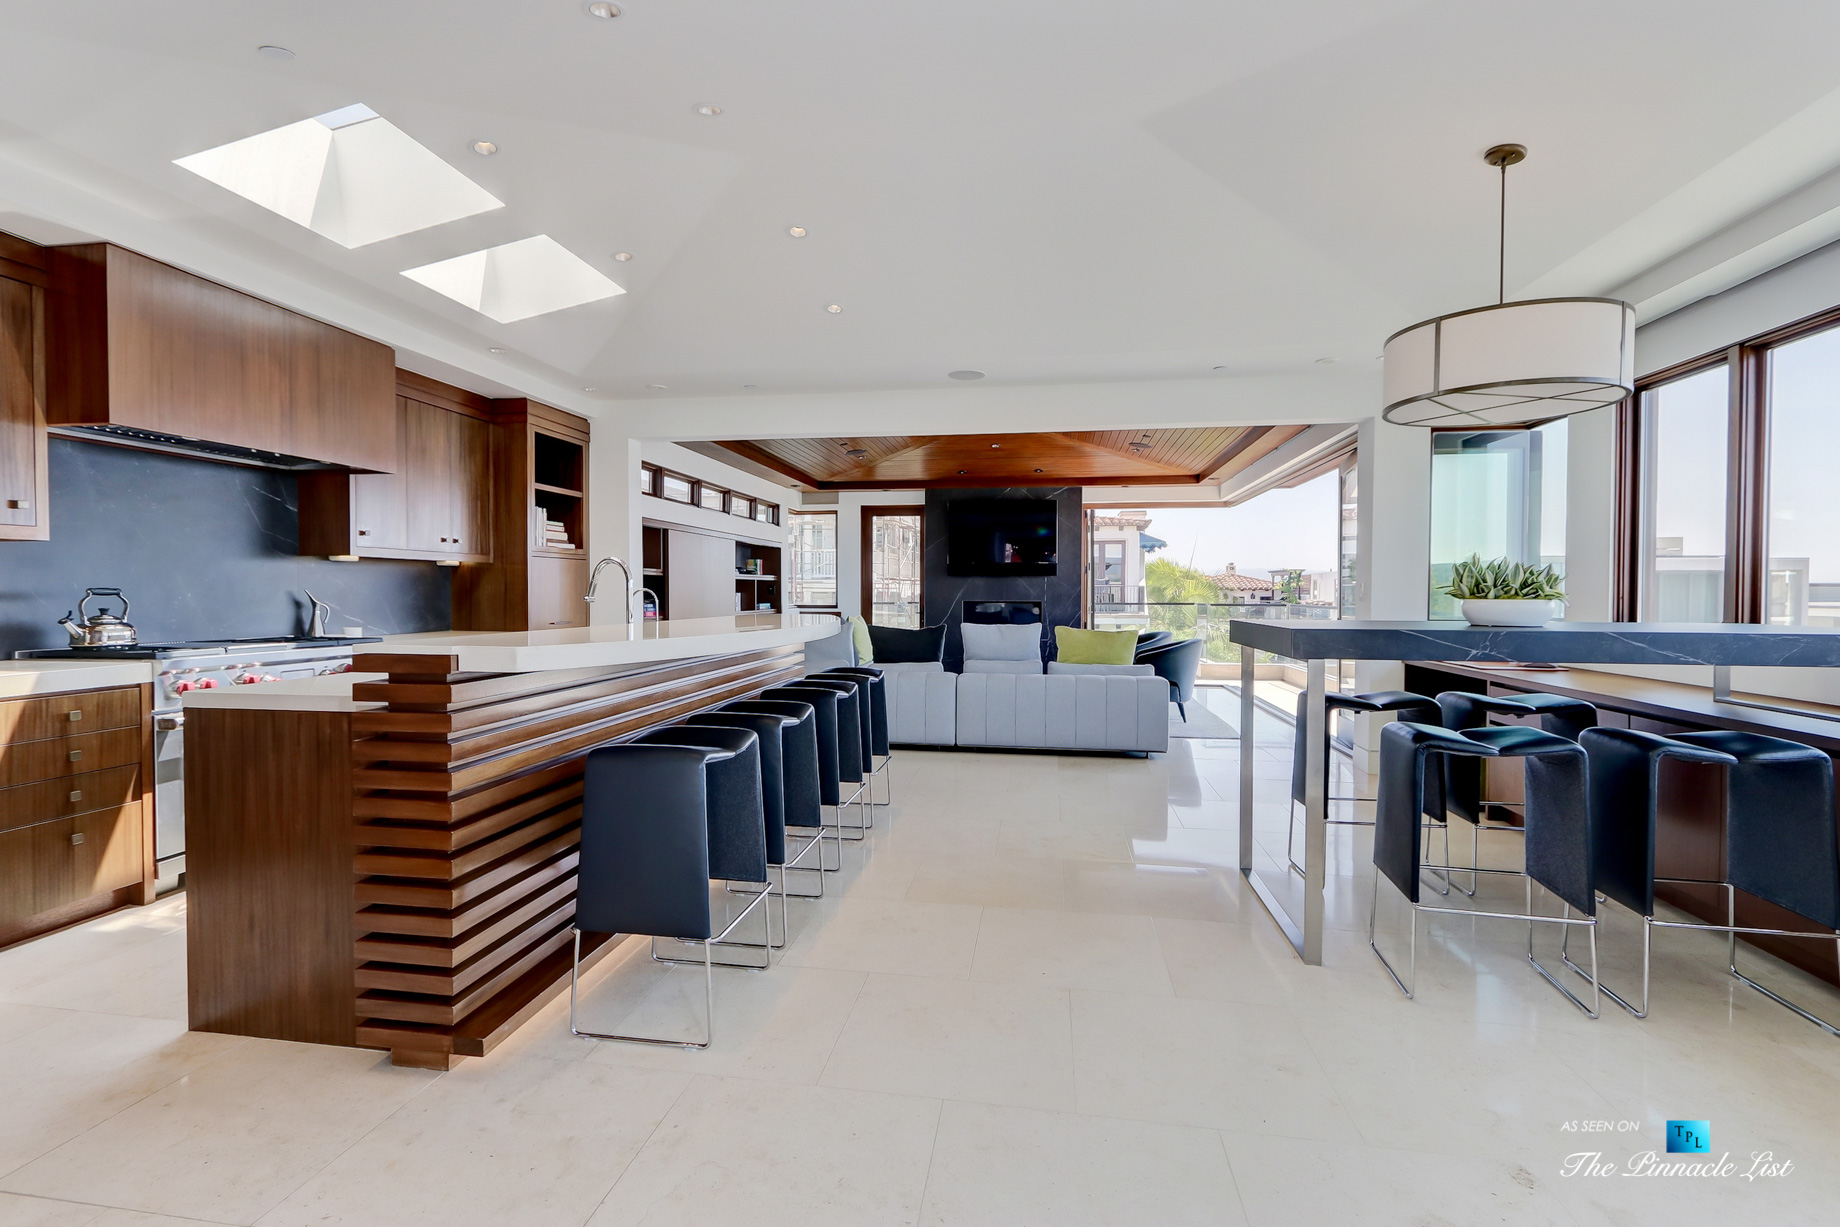 205 20th Street, Manhattan Beach, CA, USA - Kitchen - Luxury Real Estate - Ocean View Home